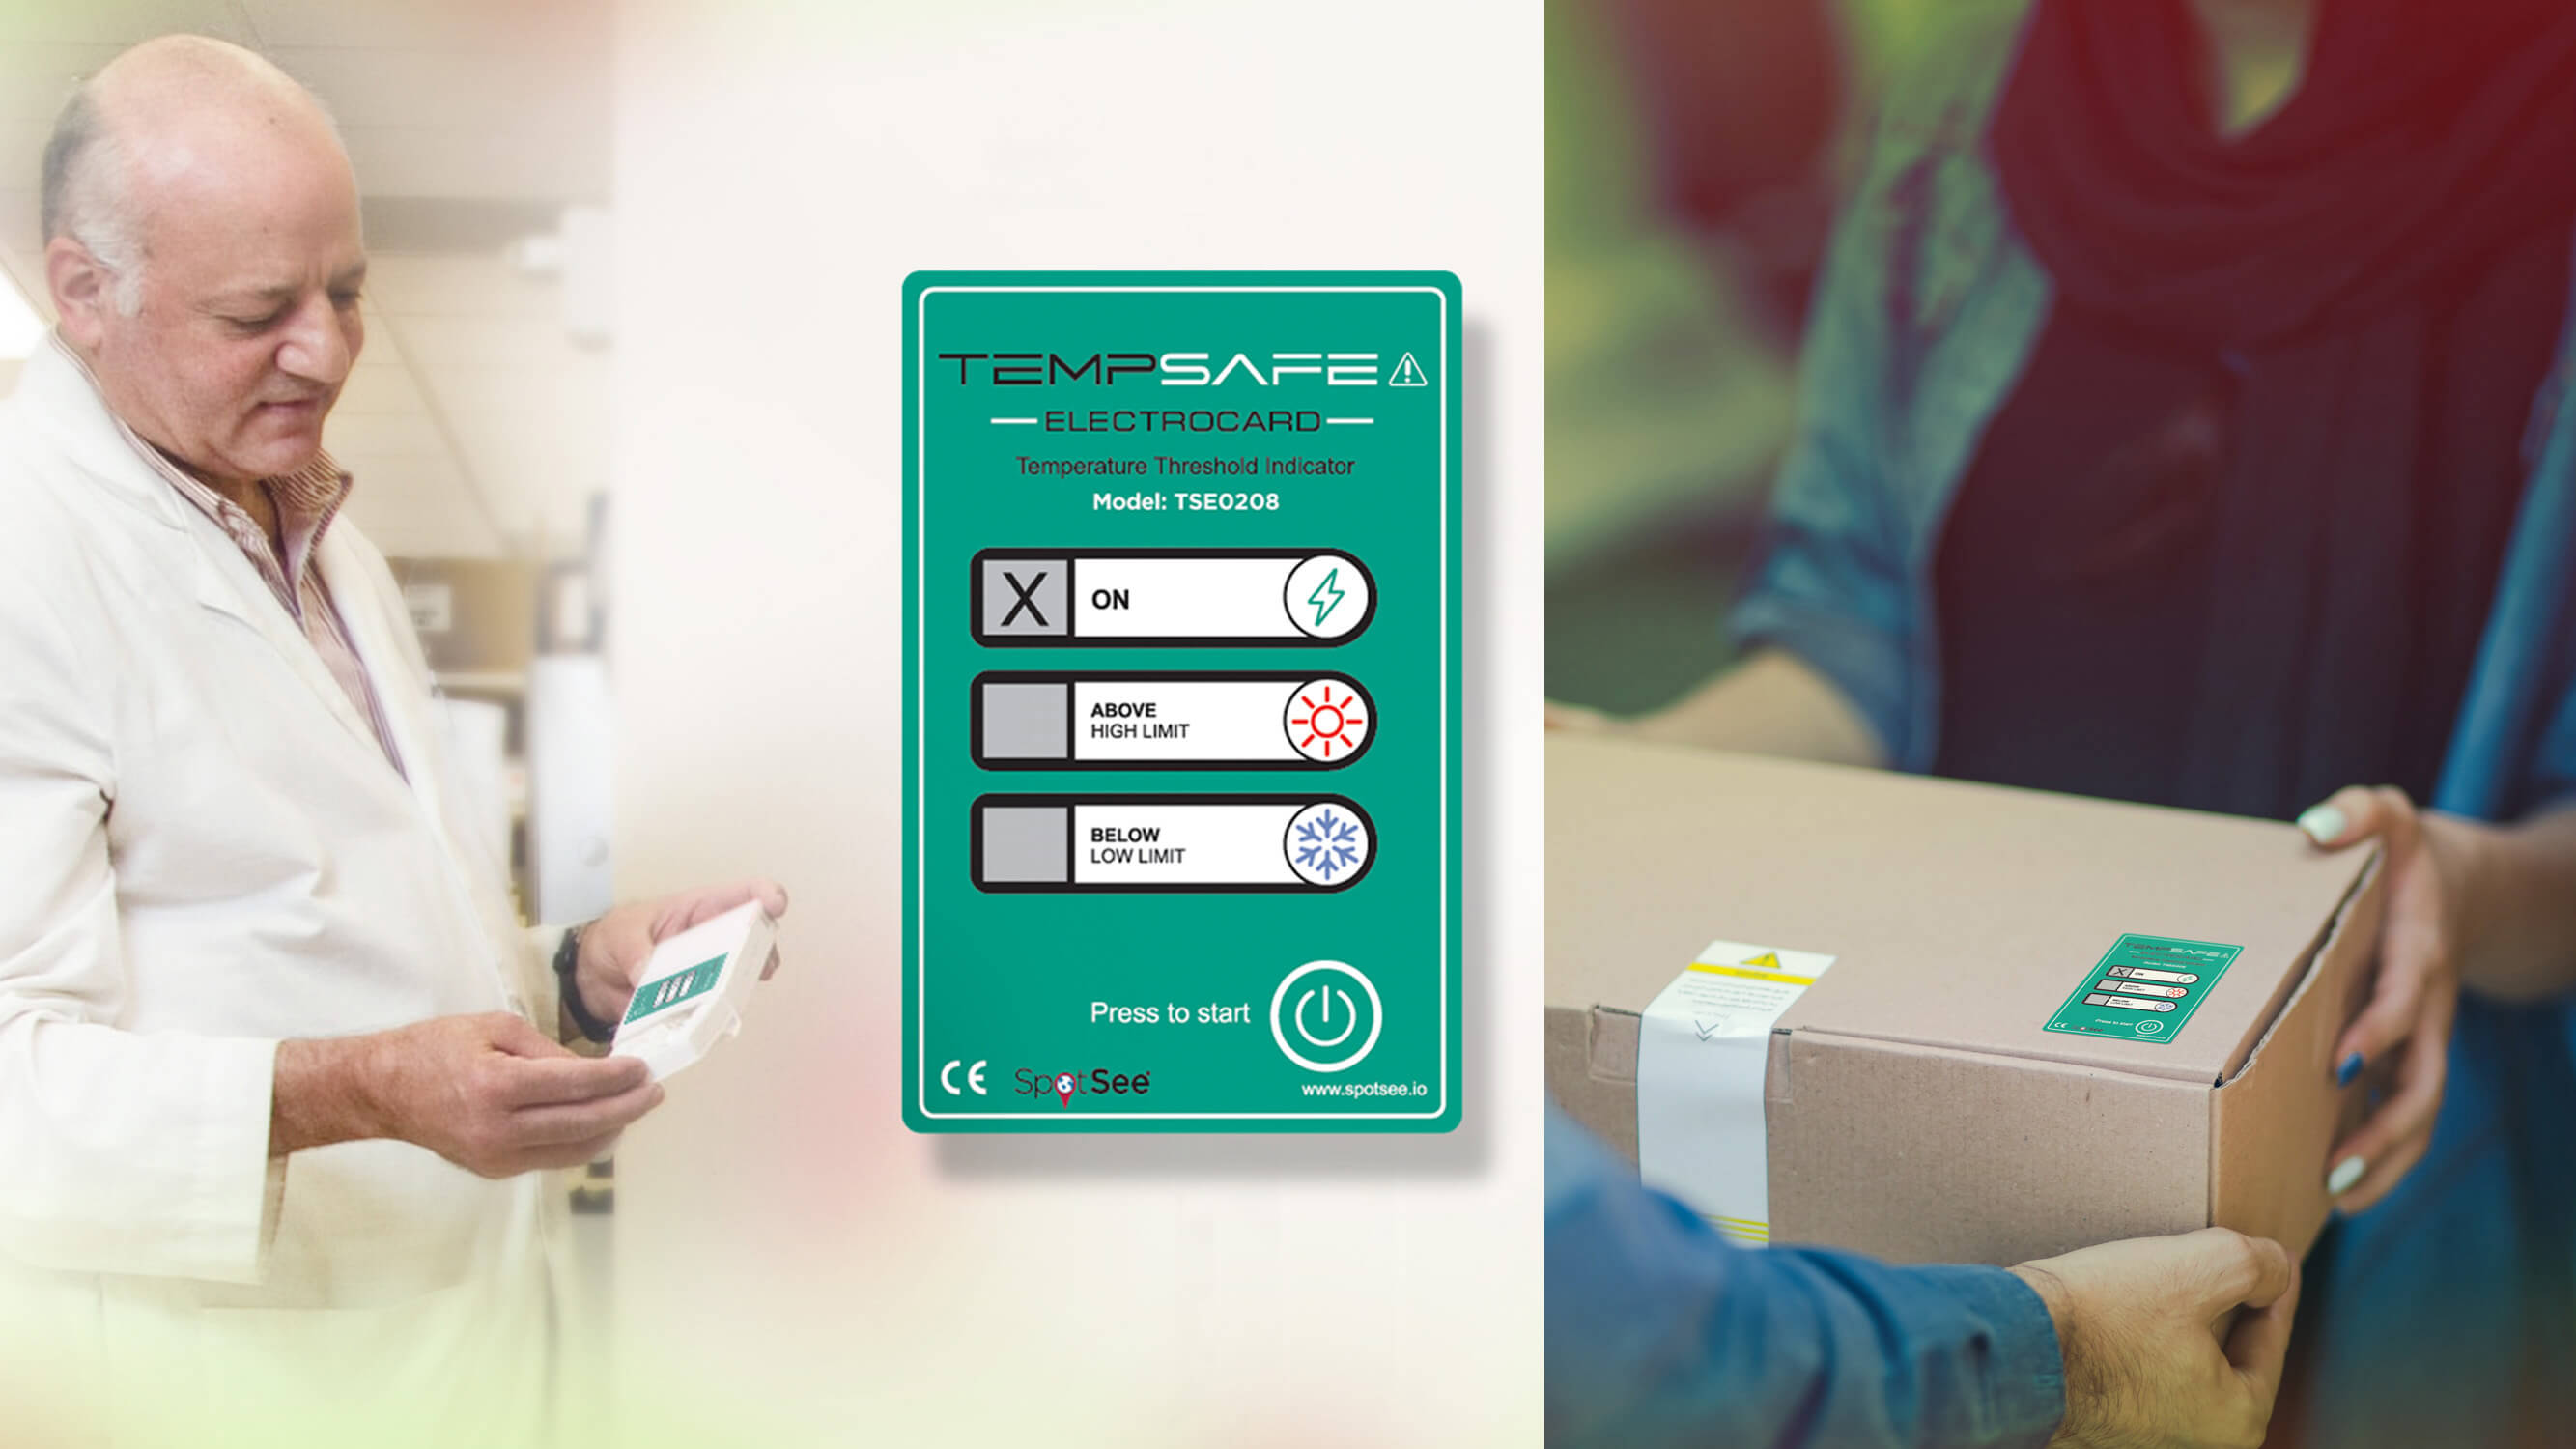 TempSafe Electrocard for logistics monitoring